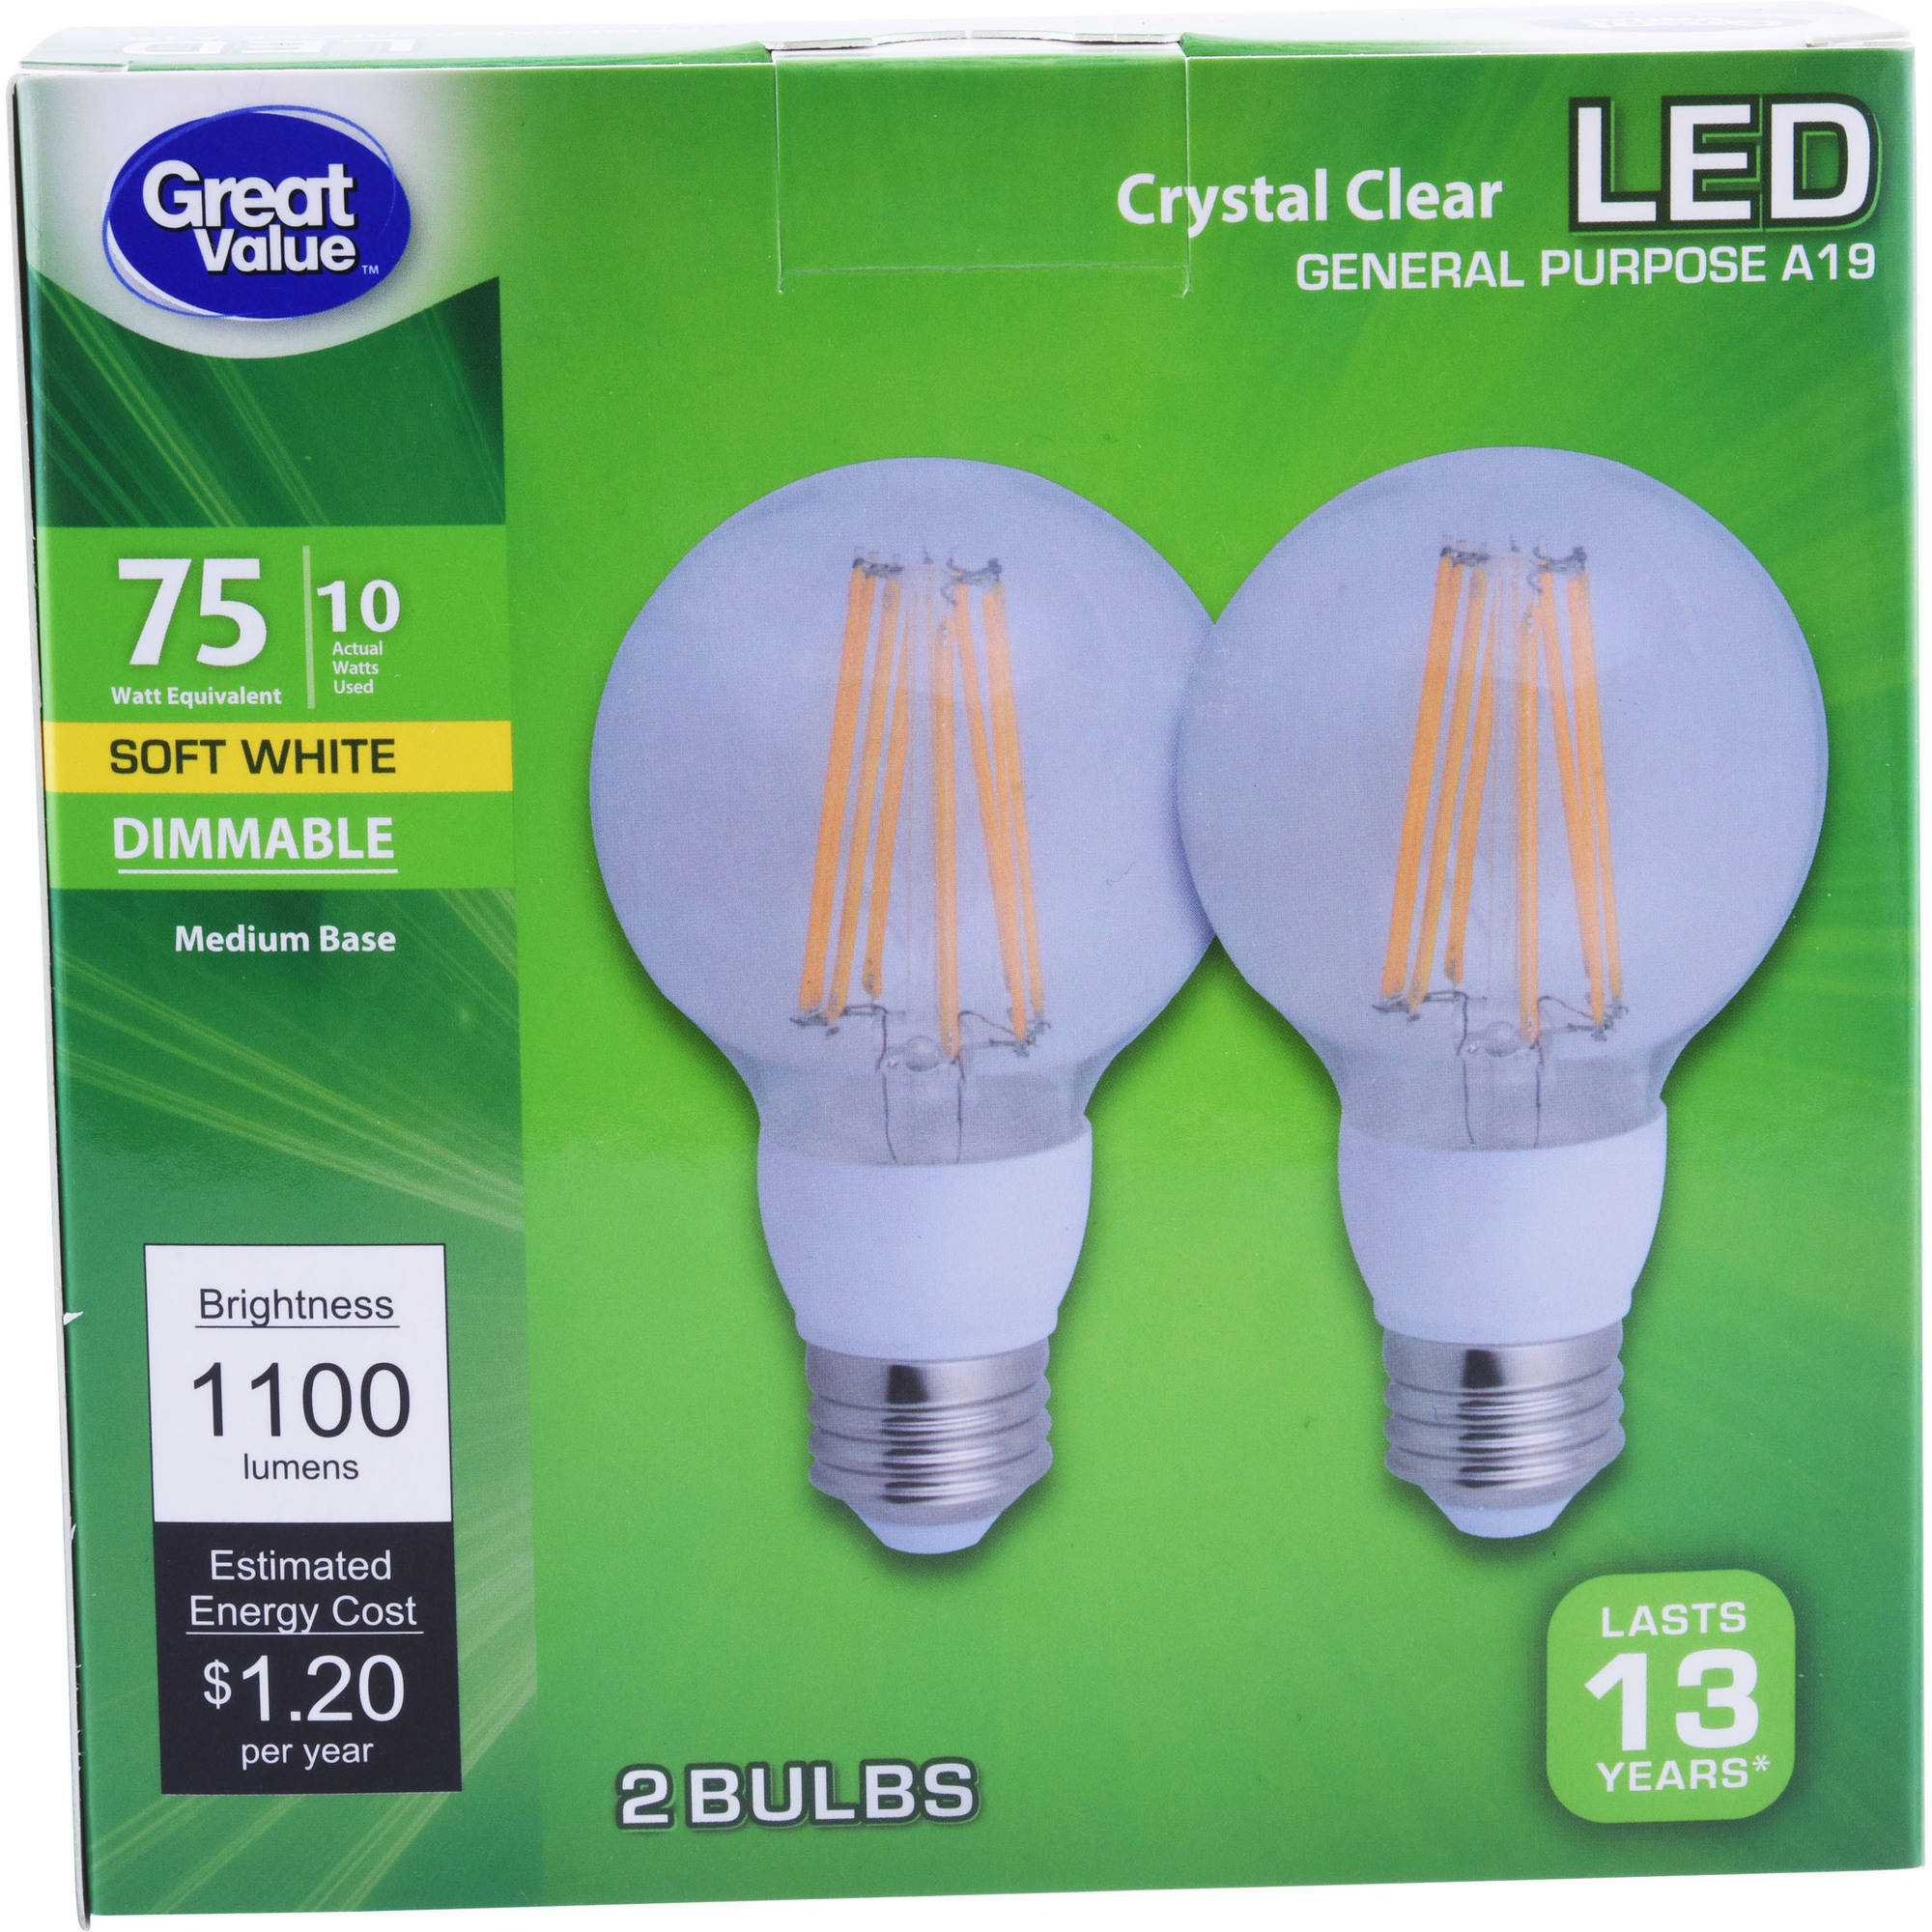 Great Value LED Filament Light Bulb, 75W, Soft White, 2-count